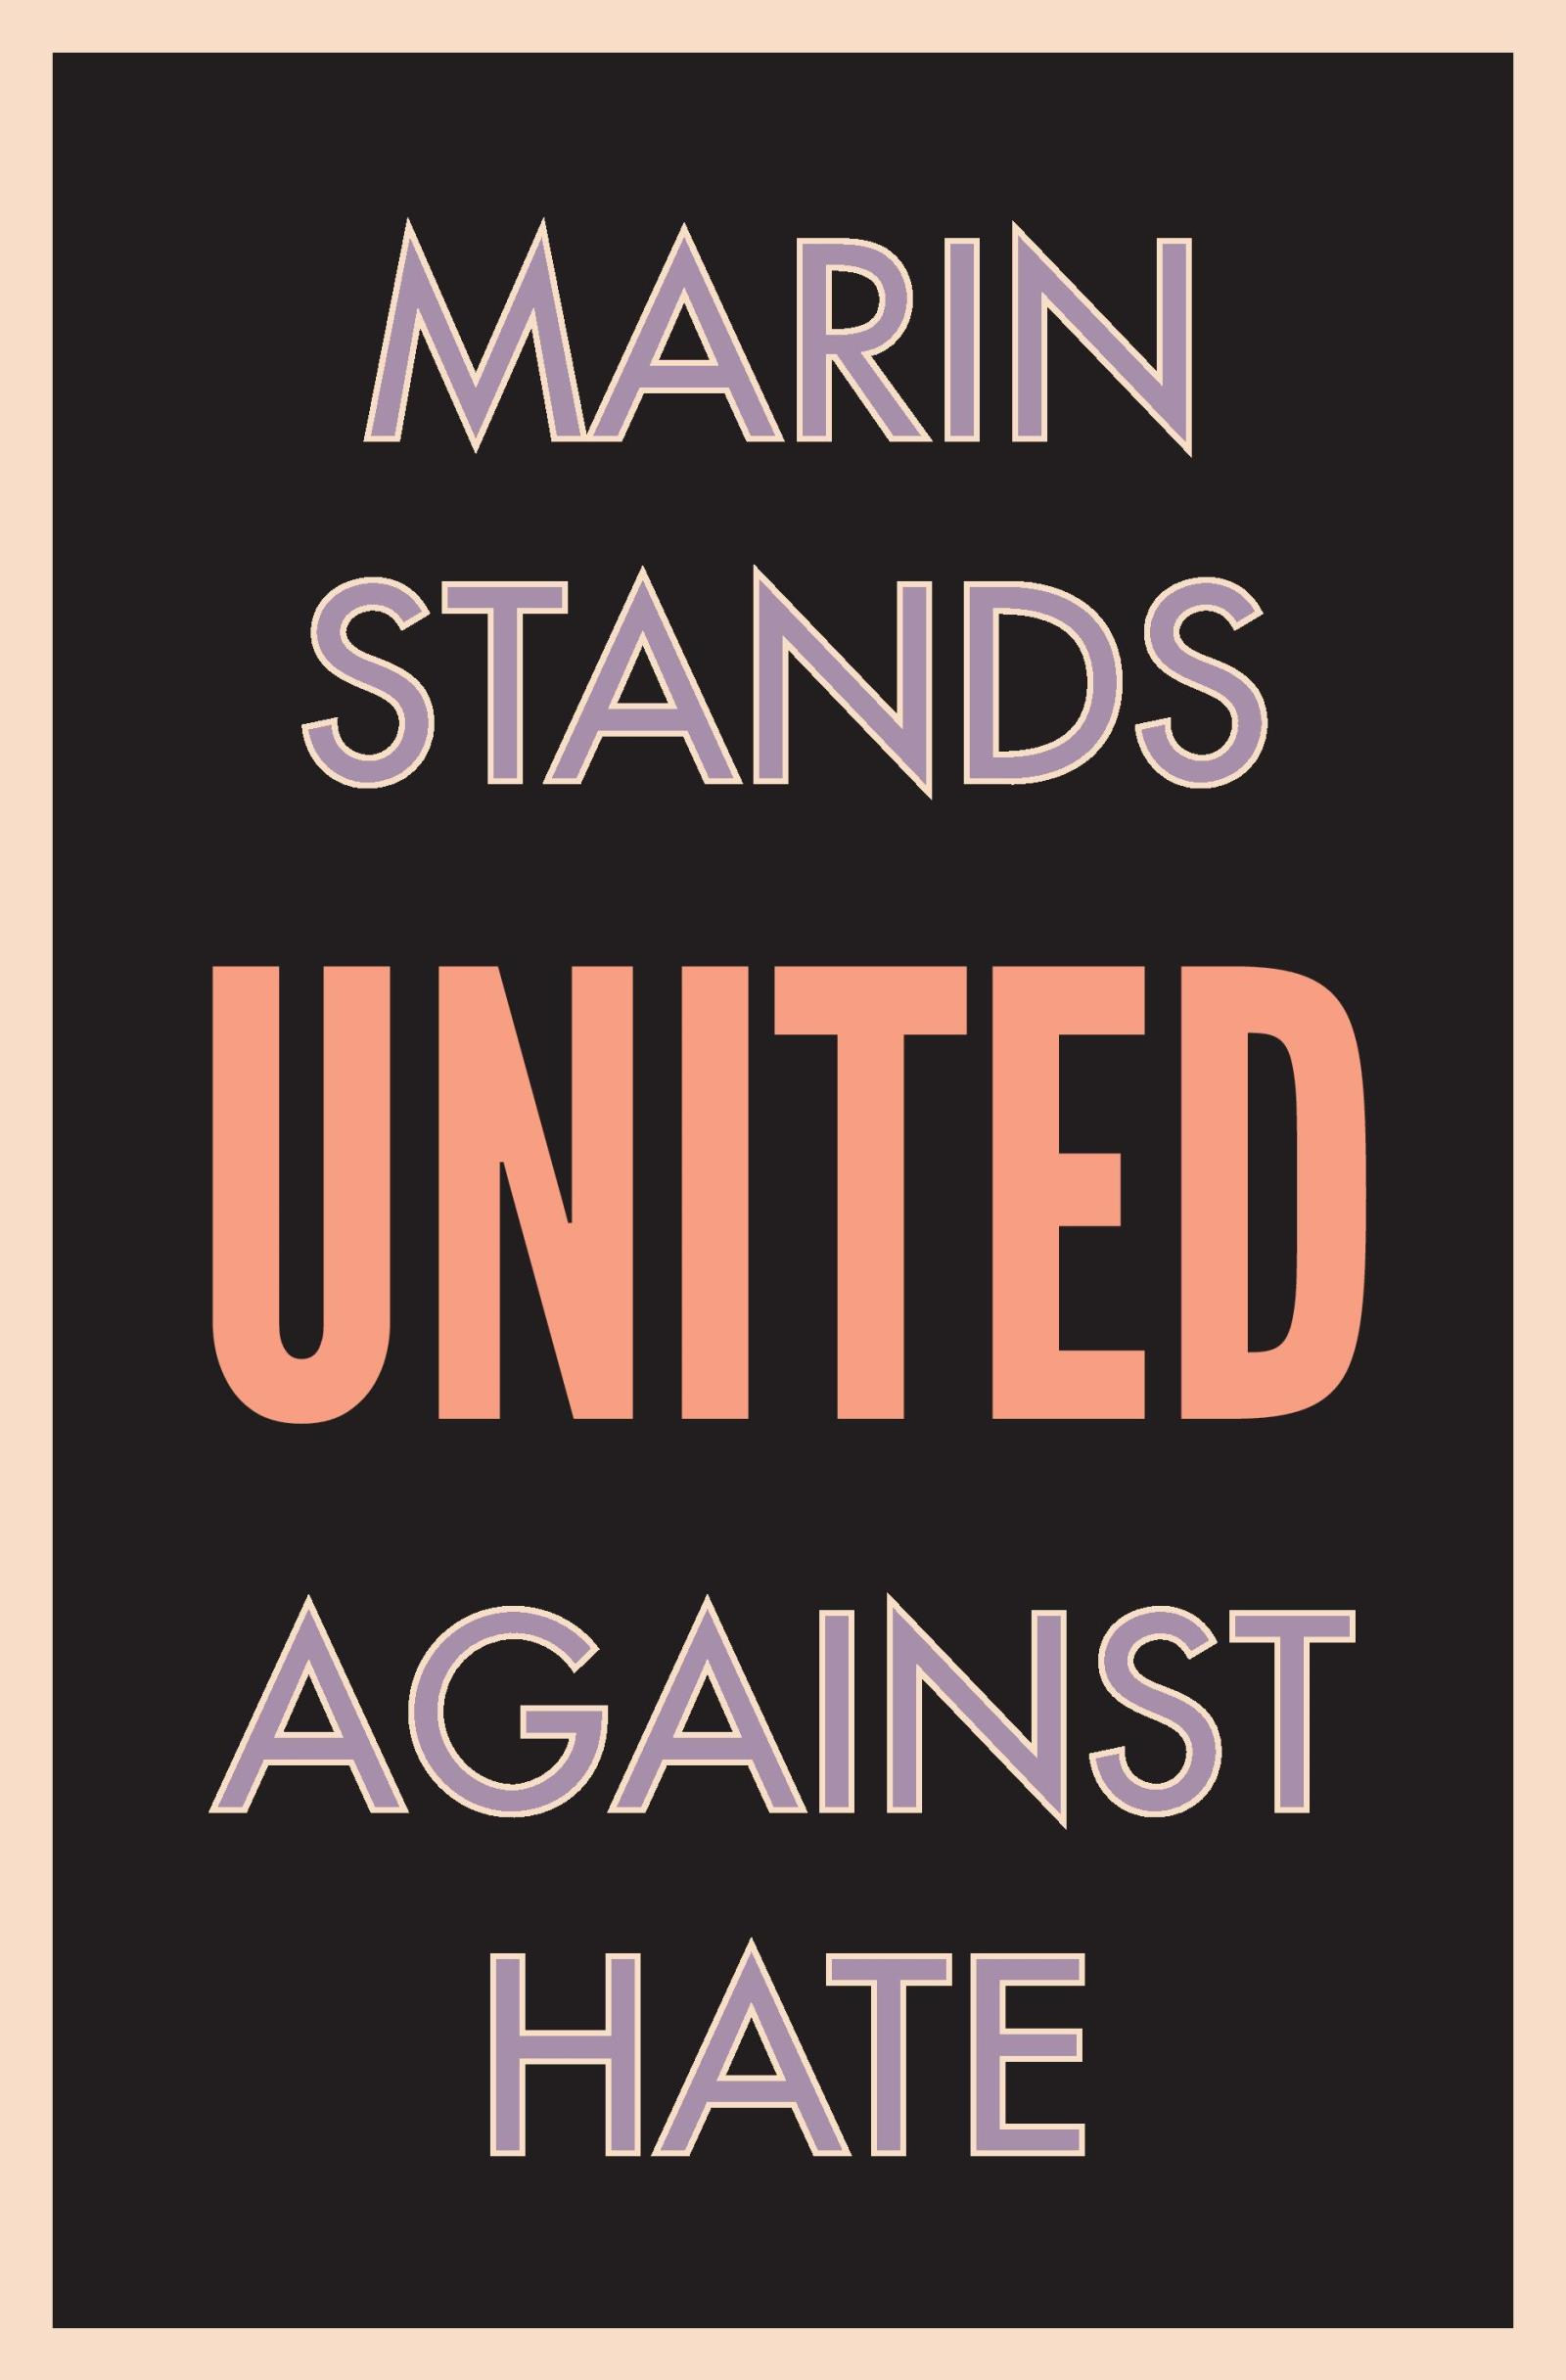 Marin United Against Hate Image